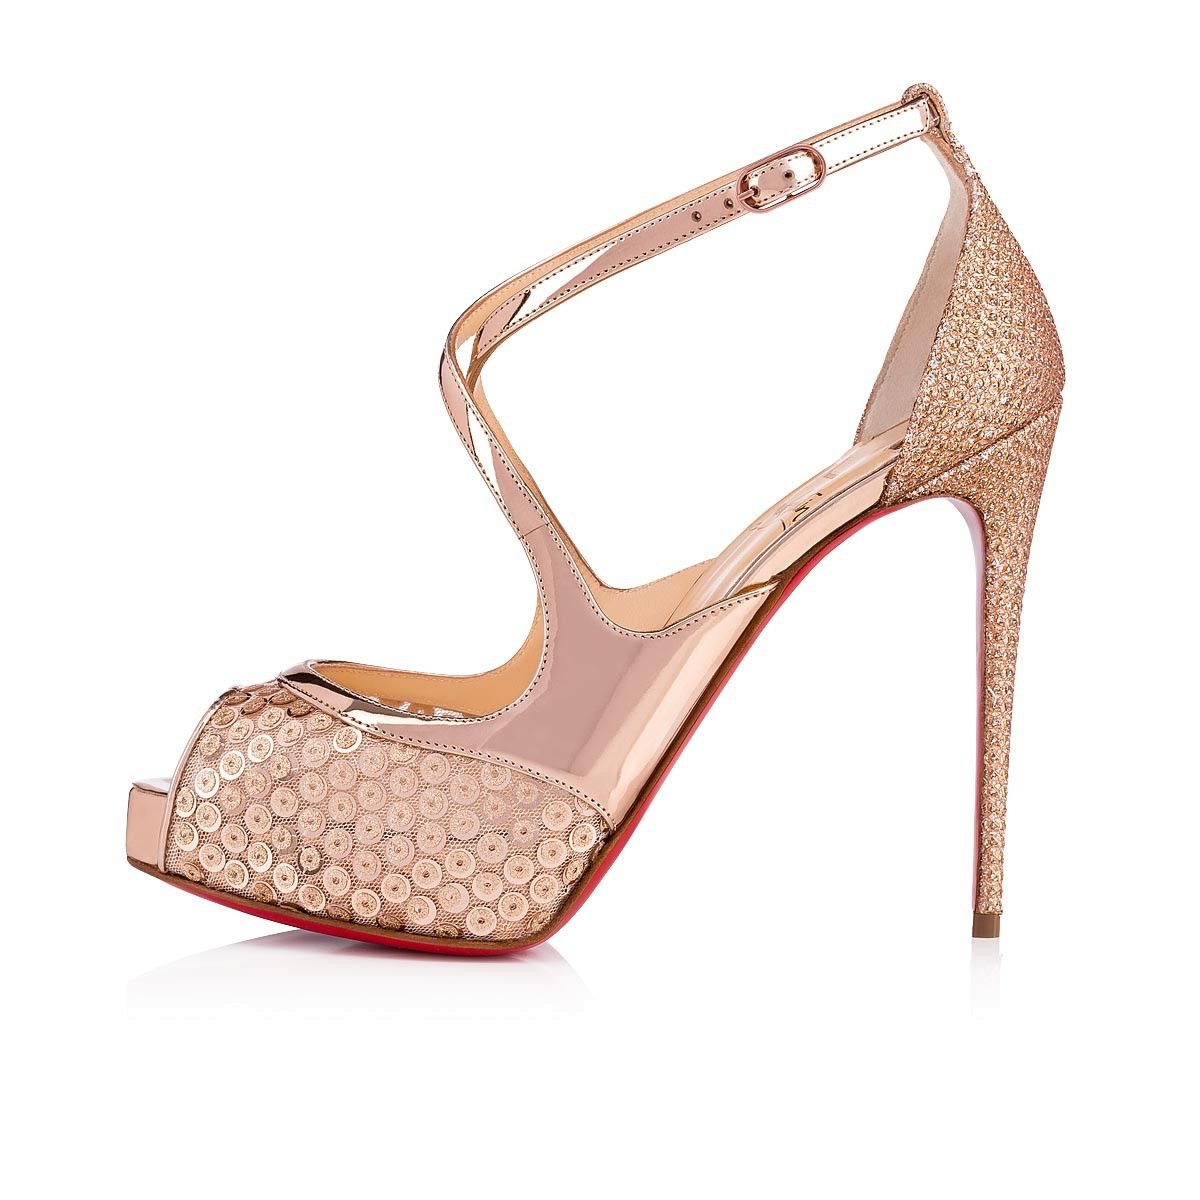 quality design eac59 e3536 Shoes - Mira Bella - Christian Louboutin | shoes | Shoes ...